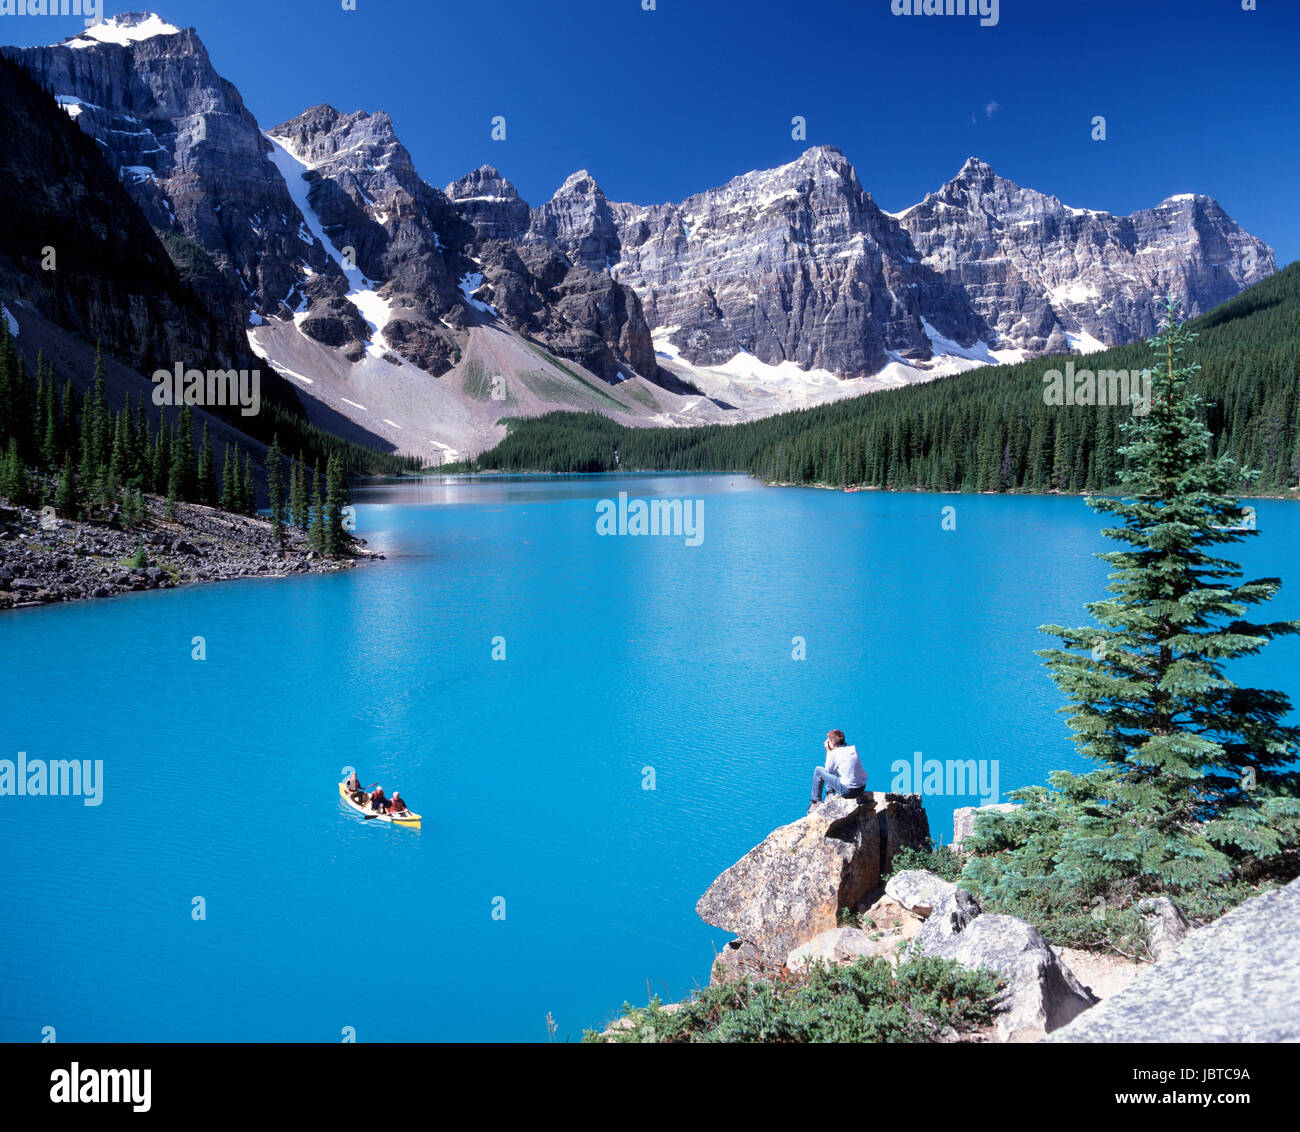 Moraine Lake Banff National Park Canada - Stock Image